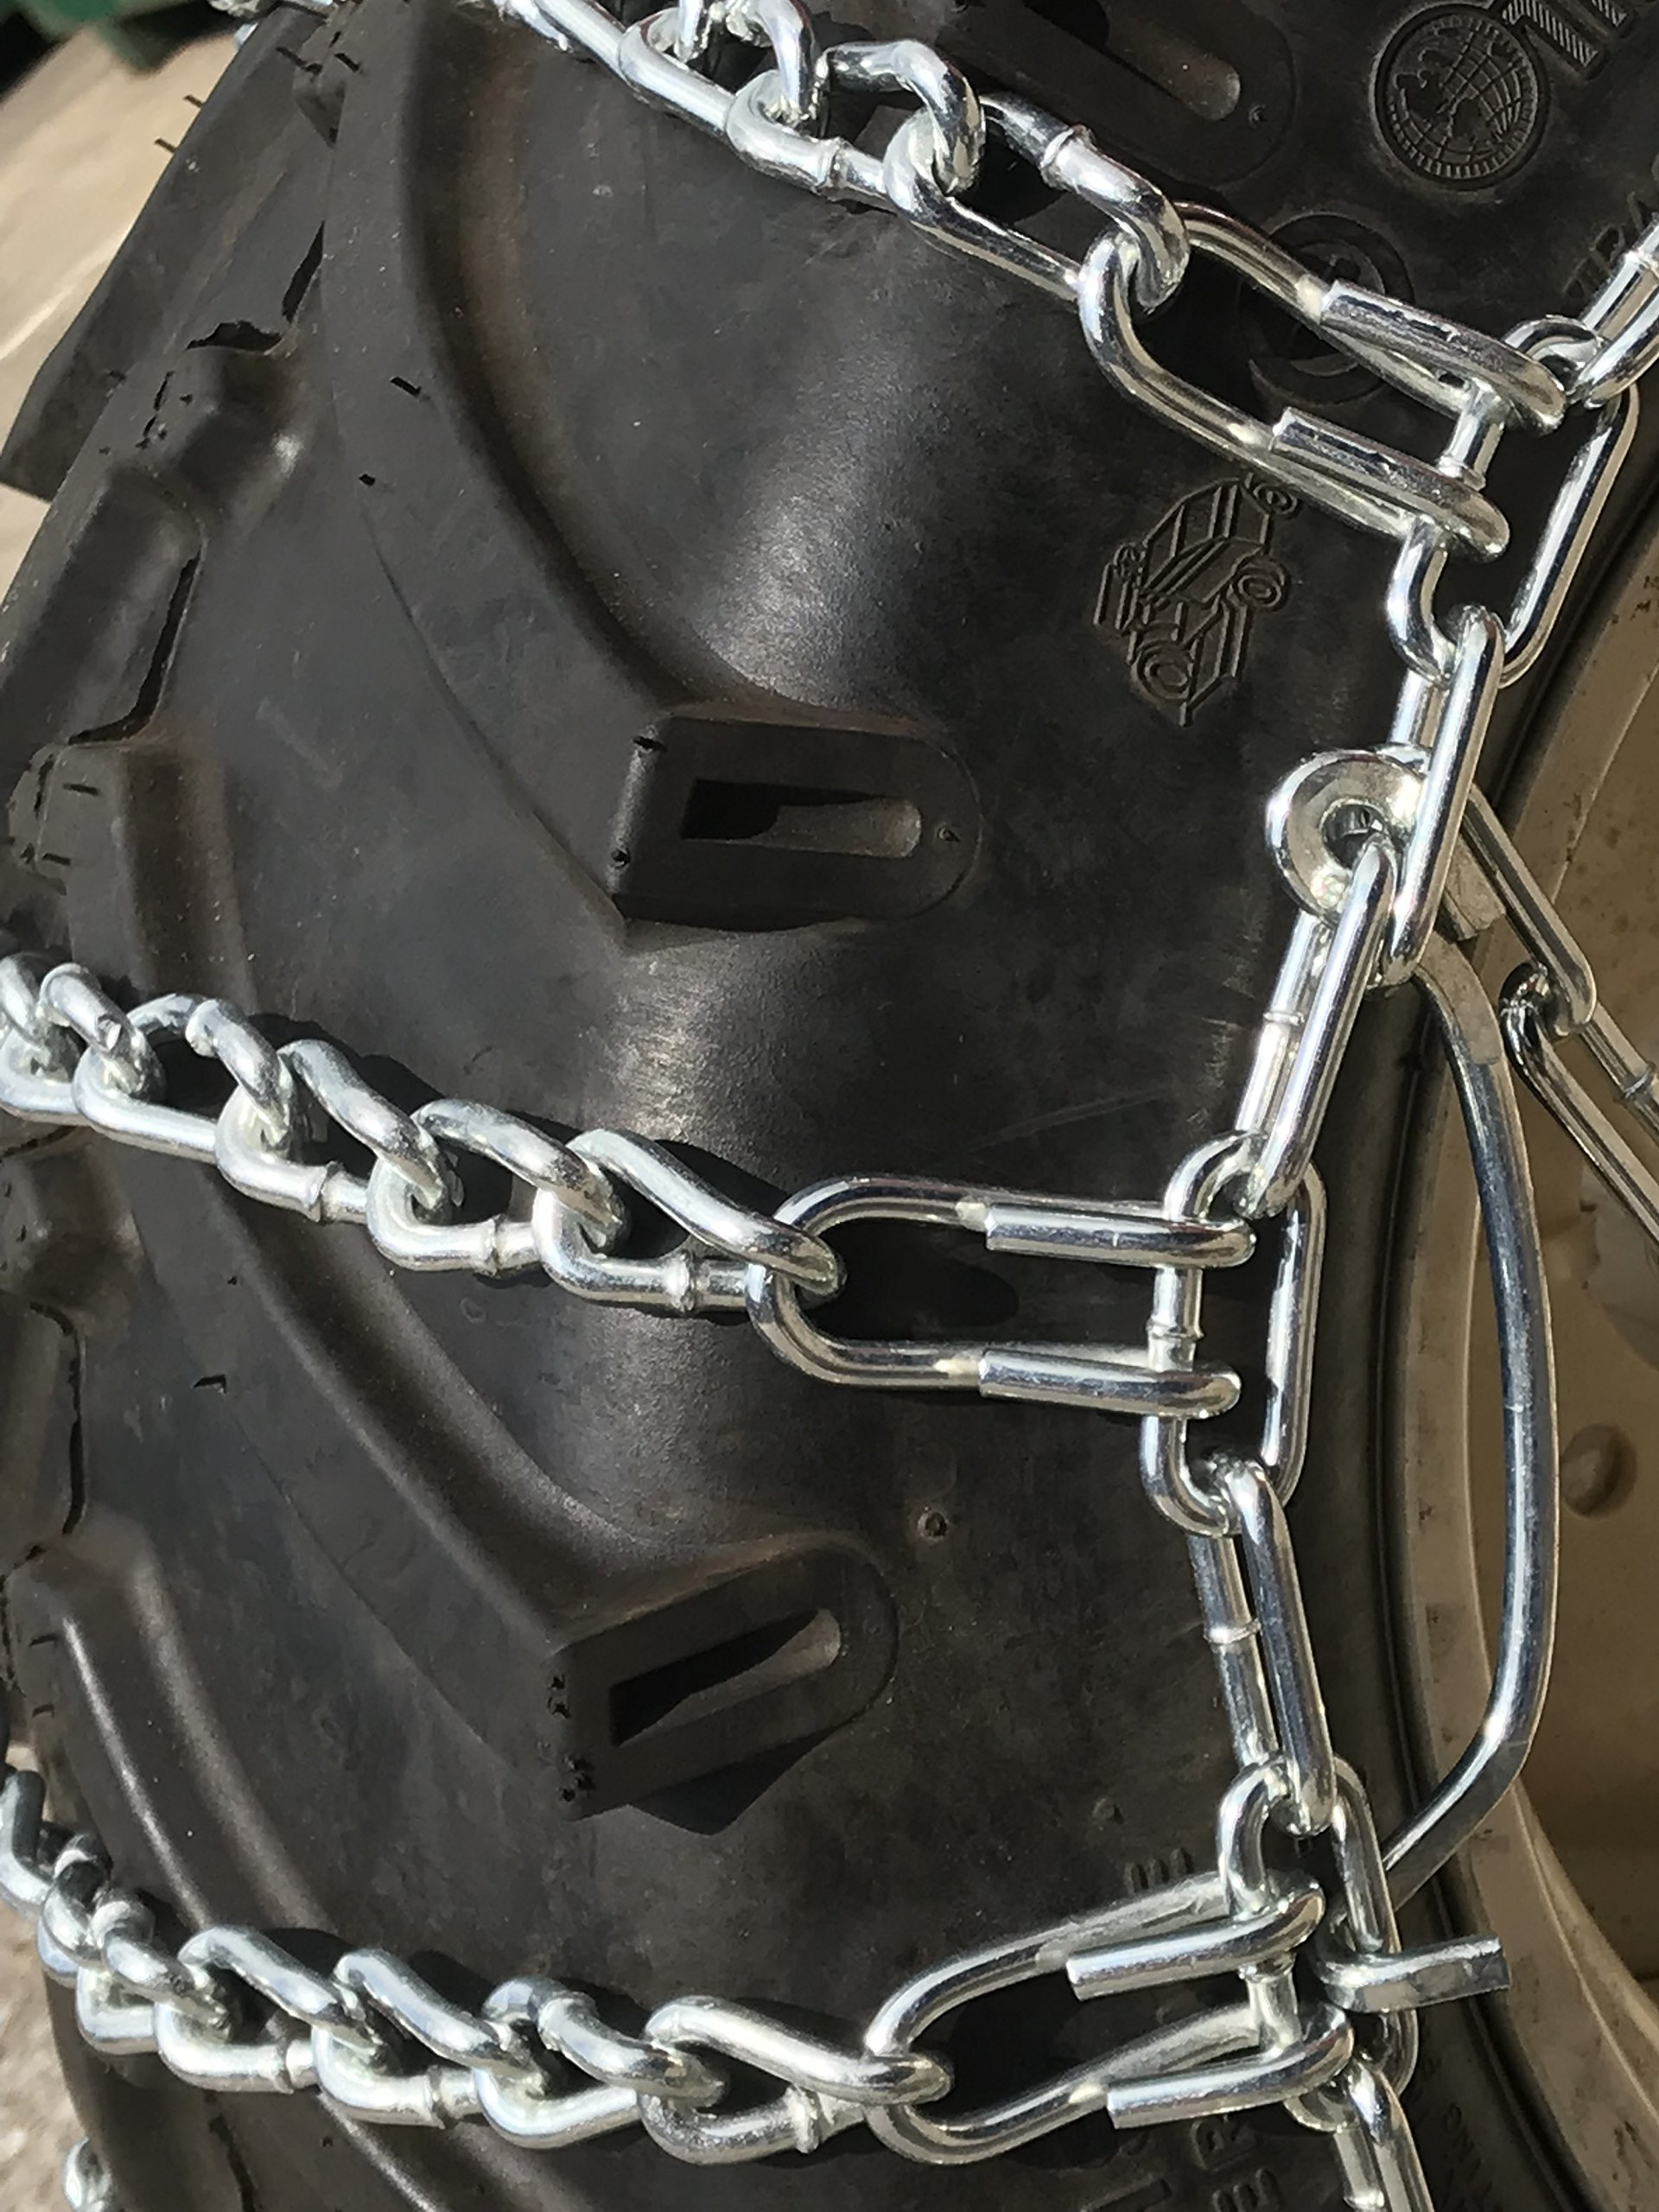 TireChain.com Heavy Duty, 2-link Lawn and Garden Tire Chains, Priced per pair. 23 X 9.50 X 12, 23 X 10.50 X 12 by TireChain.com (Image #2)